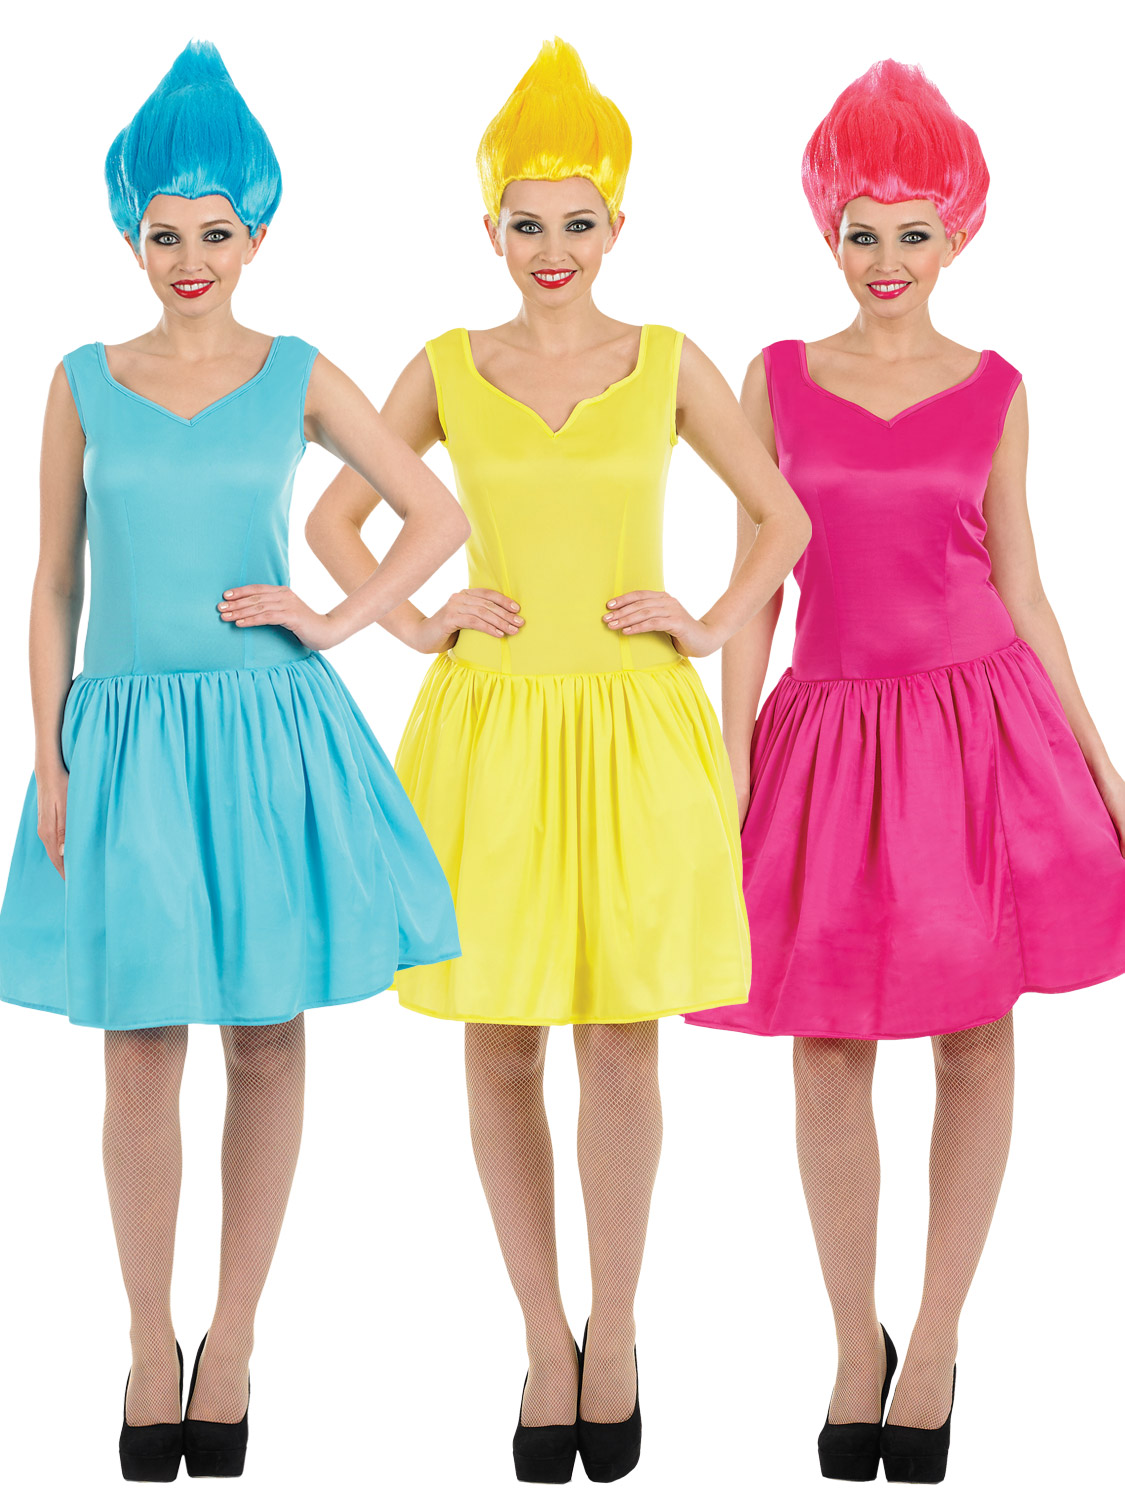 b2f10e070928 Details about Ladies Neon Pixie Costume Adults Fairy Fancy Dress + Wig  Womens 90s Troll Outfit